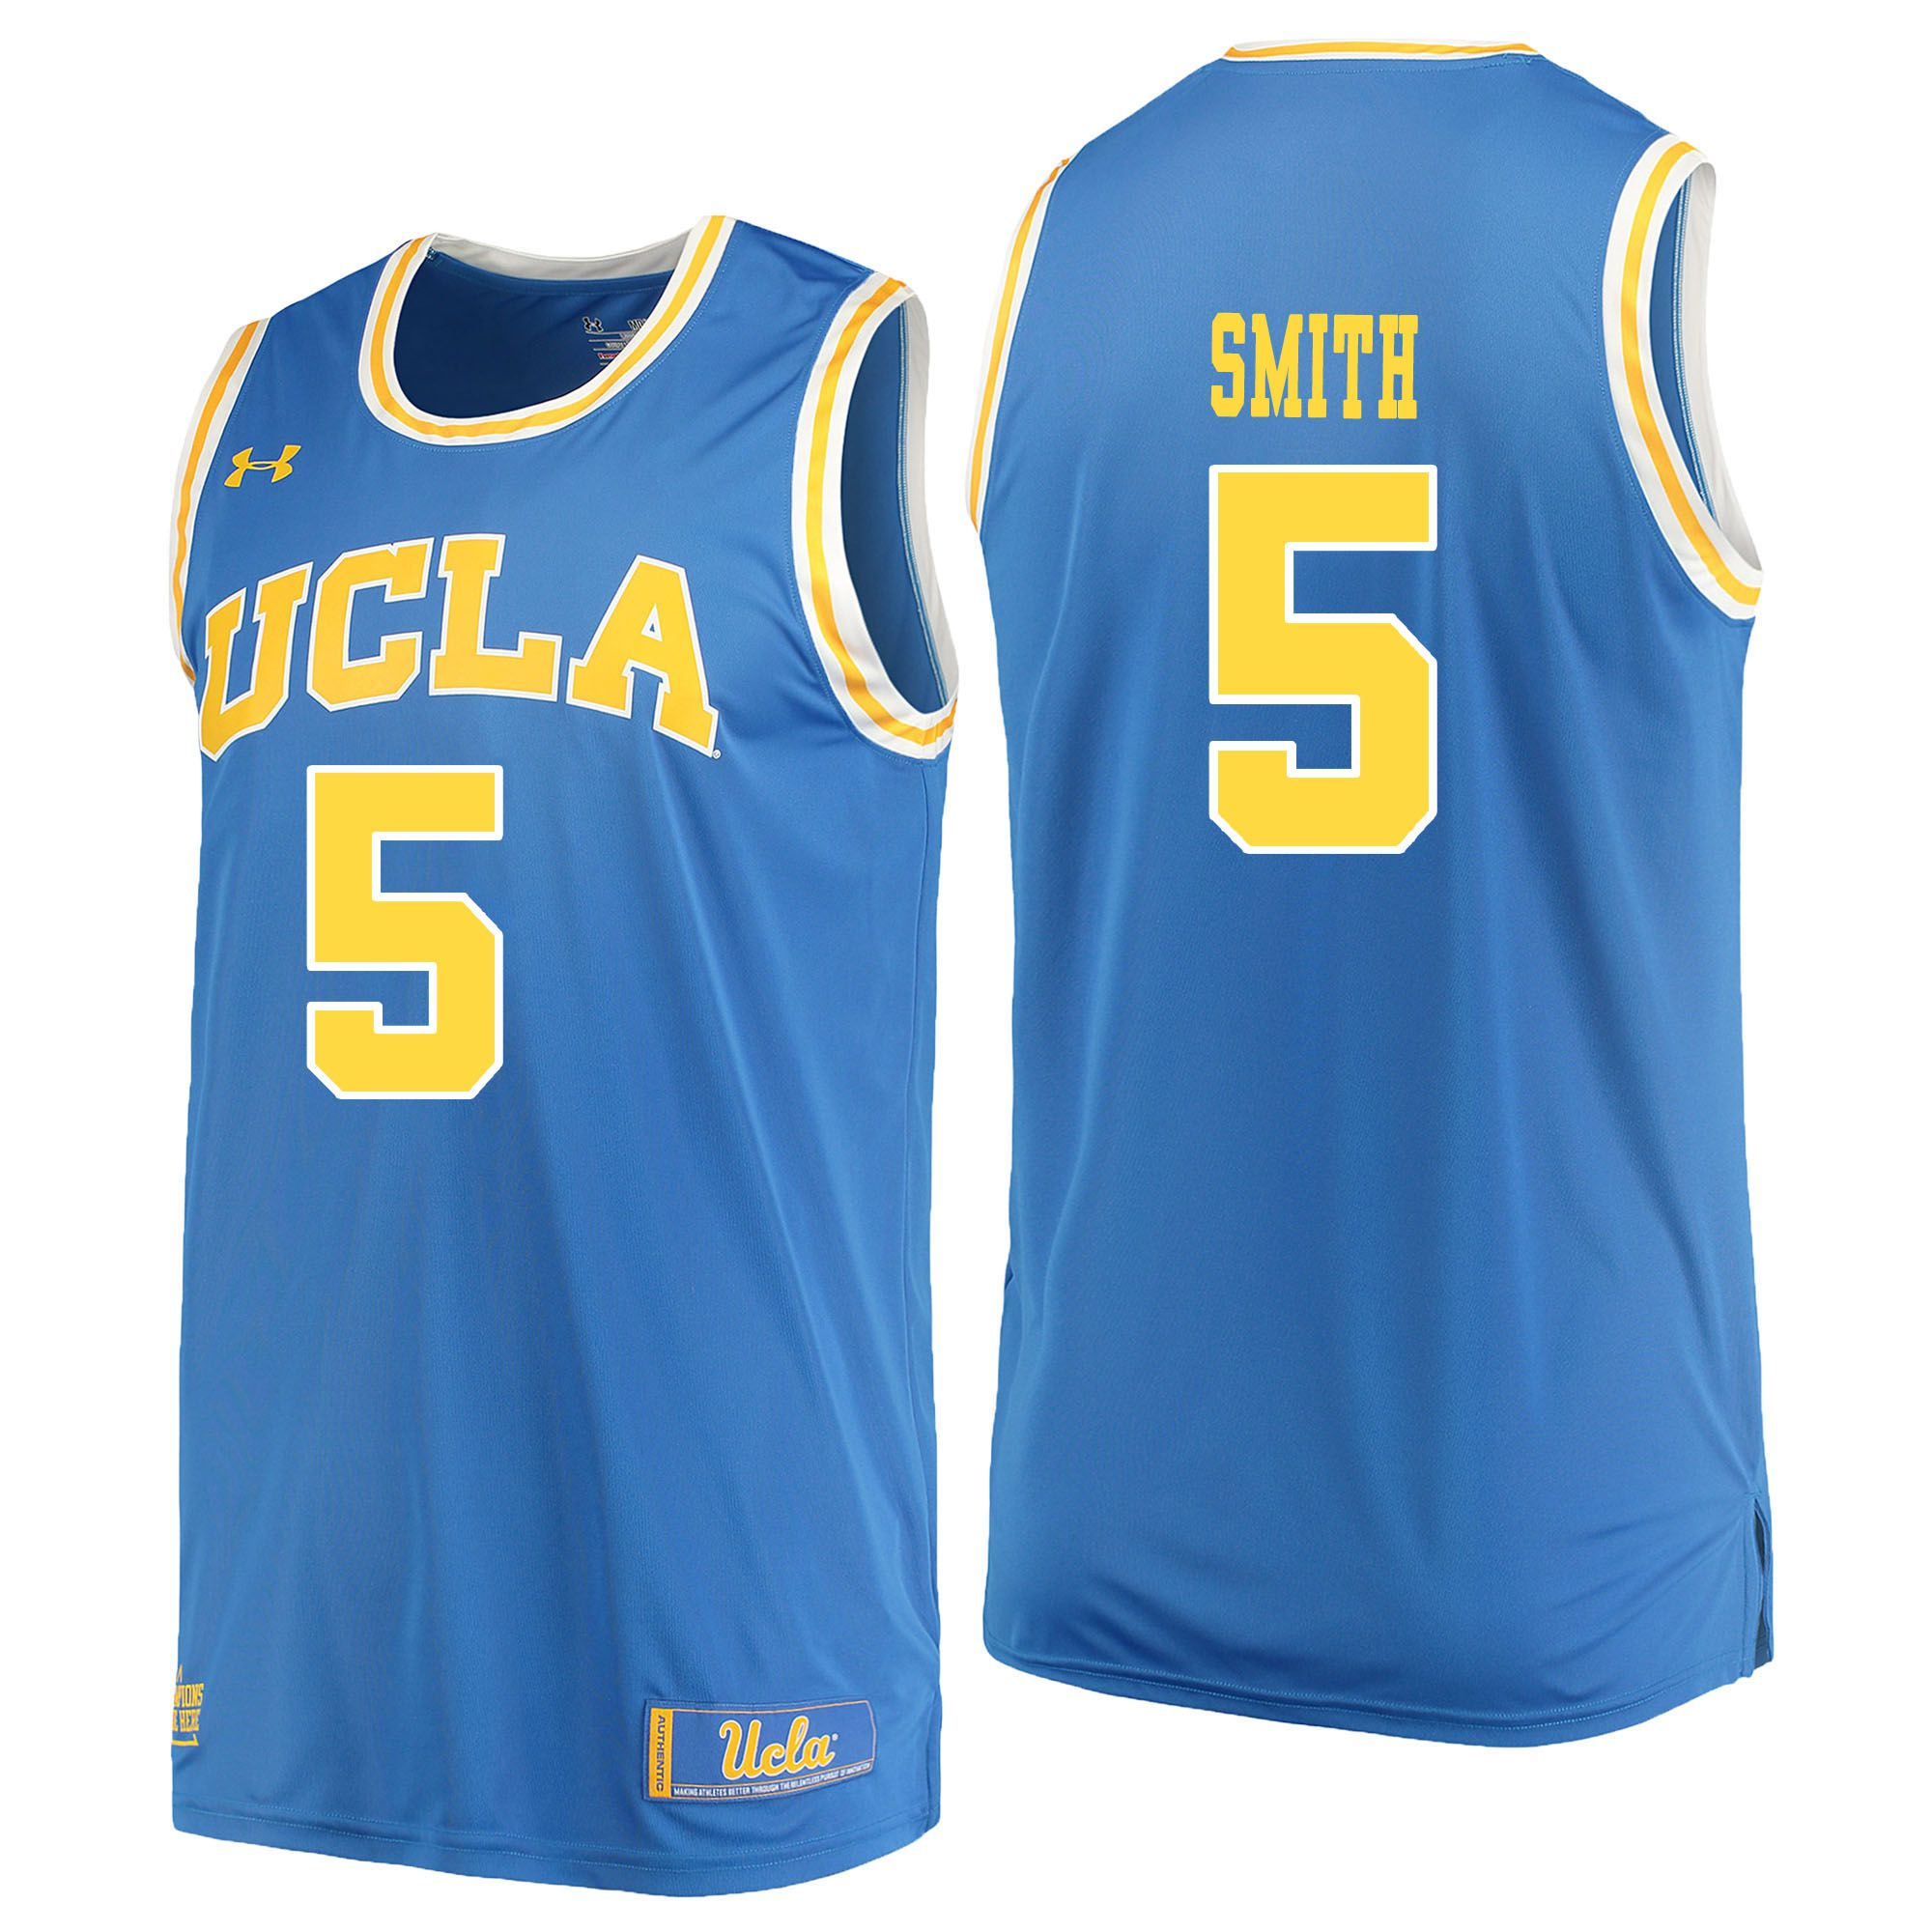 Men UCLA UA 5 Smith Light Blue Customized NCAA Jerseys